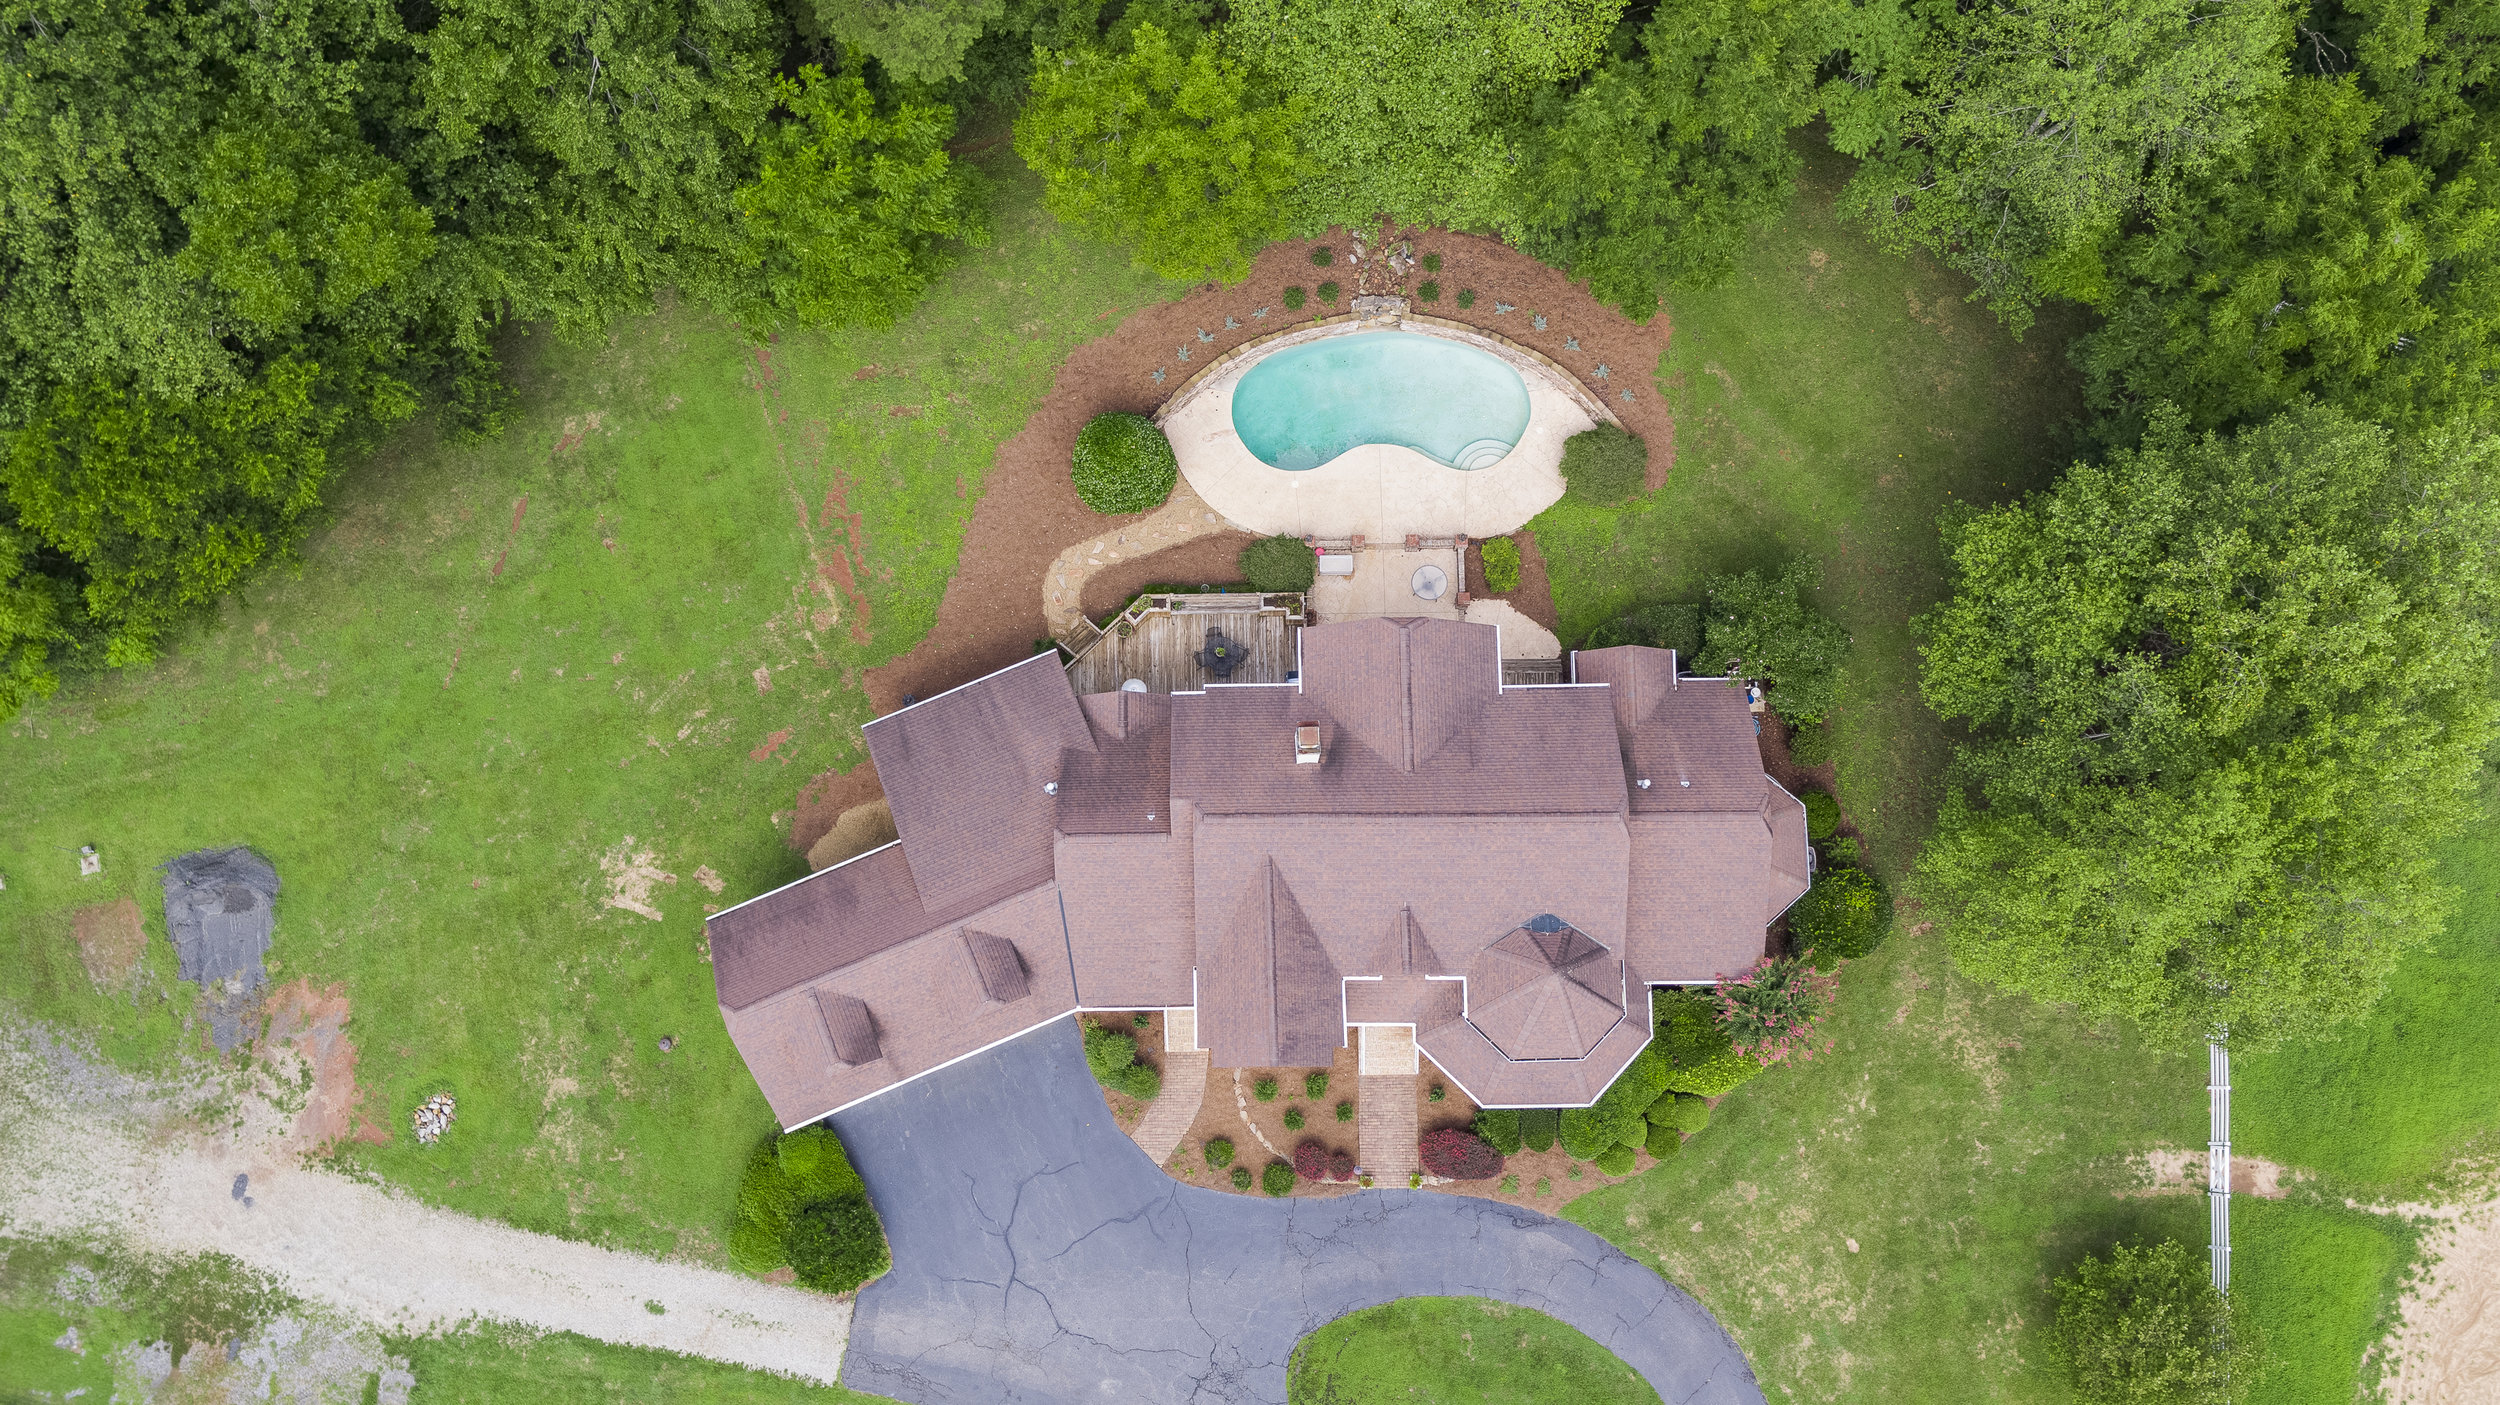 real-estate-photography-drone-photographer-drone-greensboro-nc-triad-214.jpg